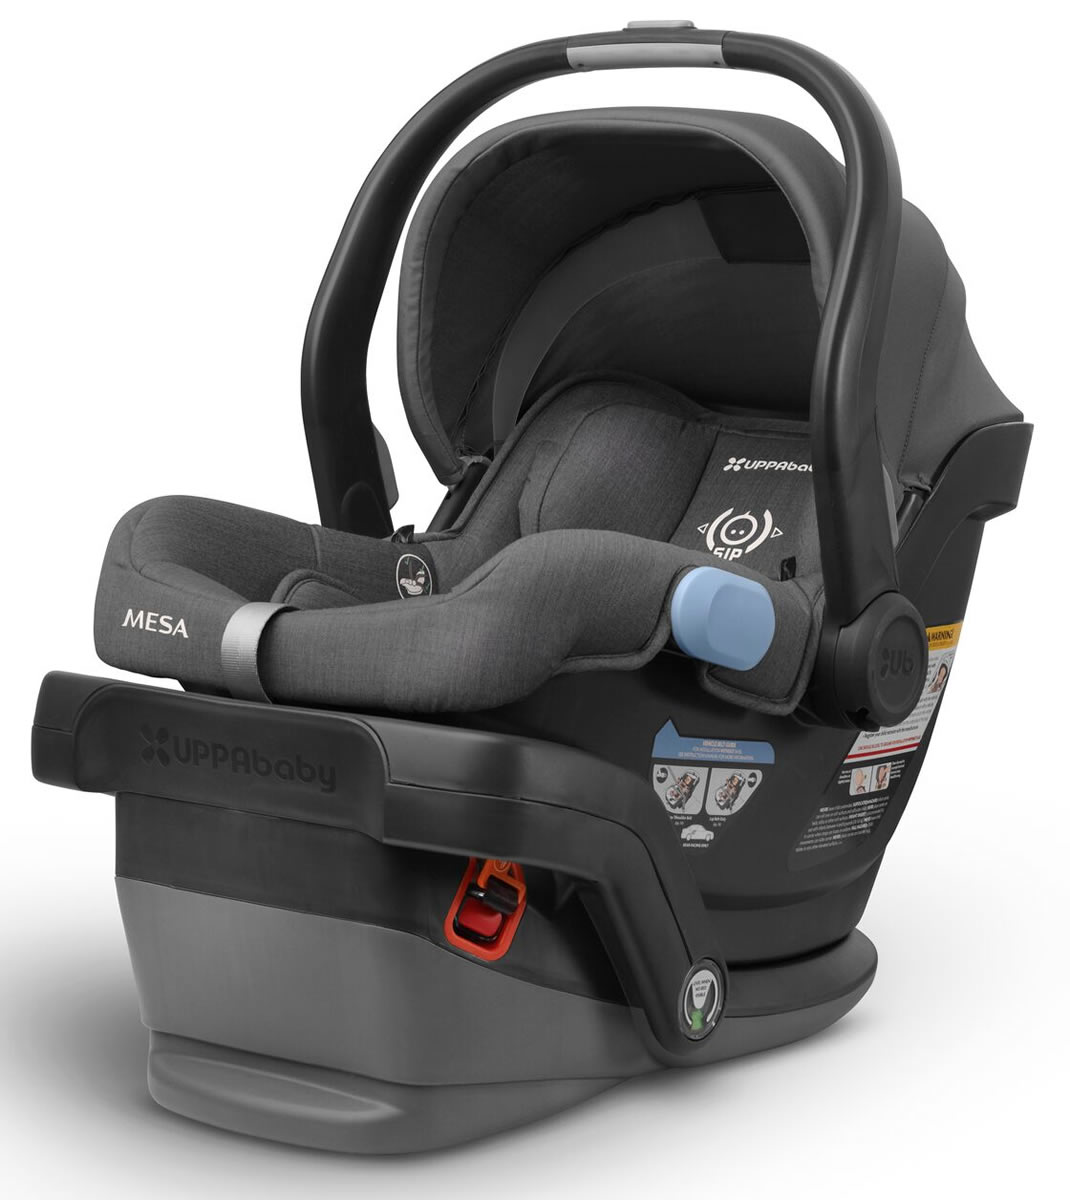 Uppa Baby 2018 MESA Infant Car Seat - Jordan